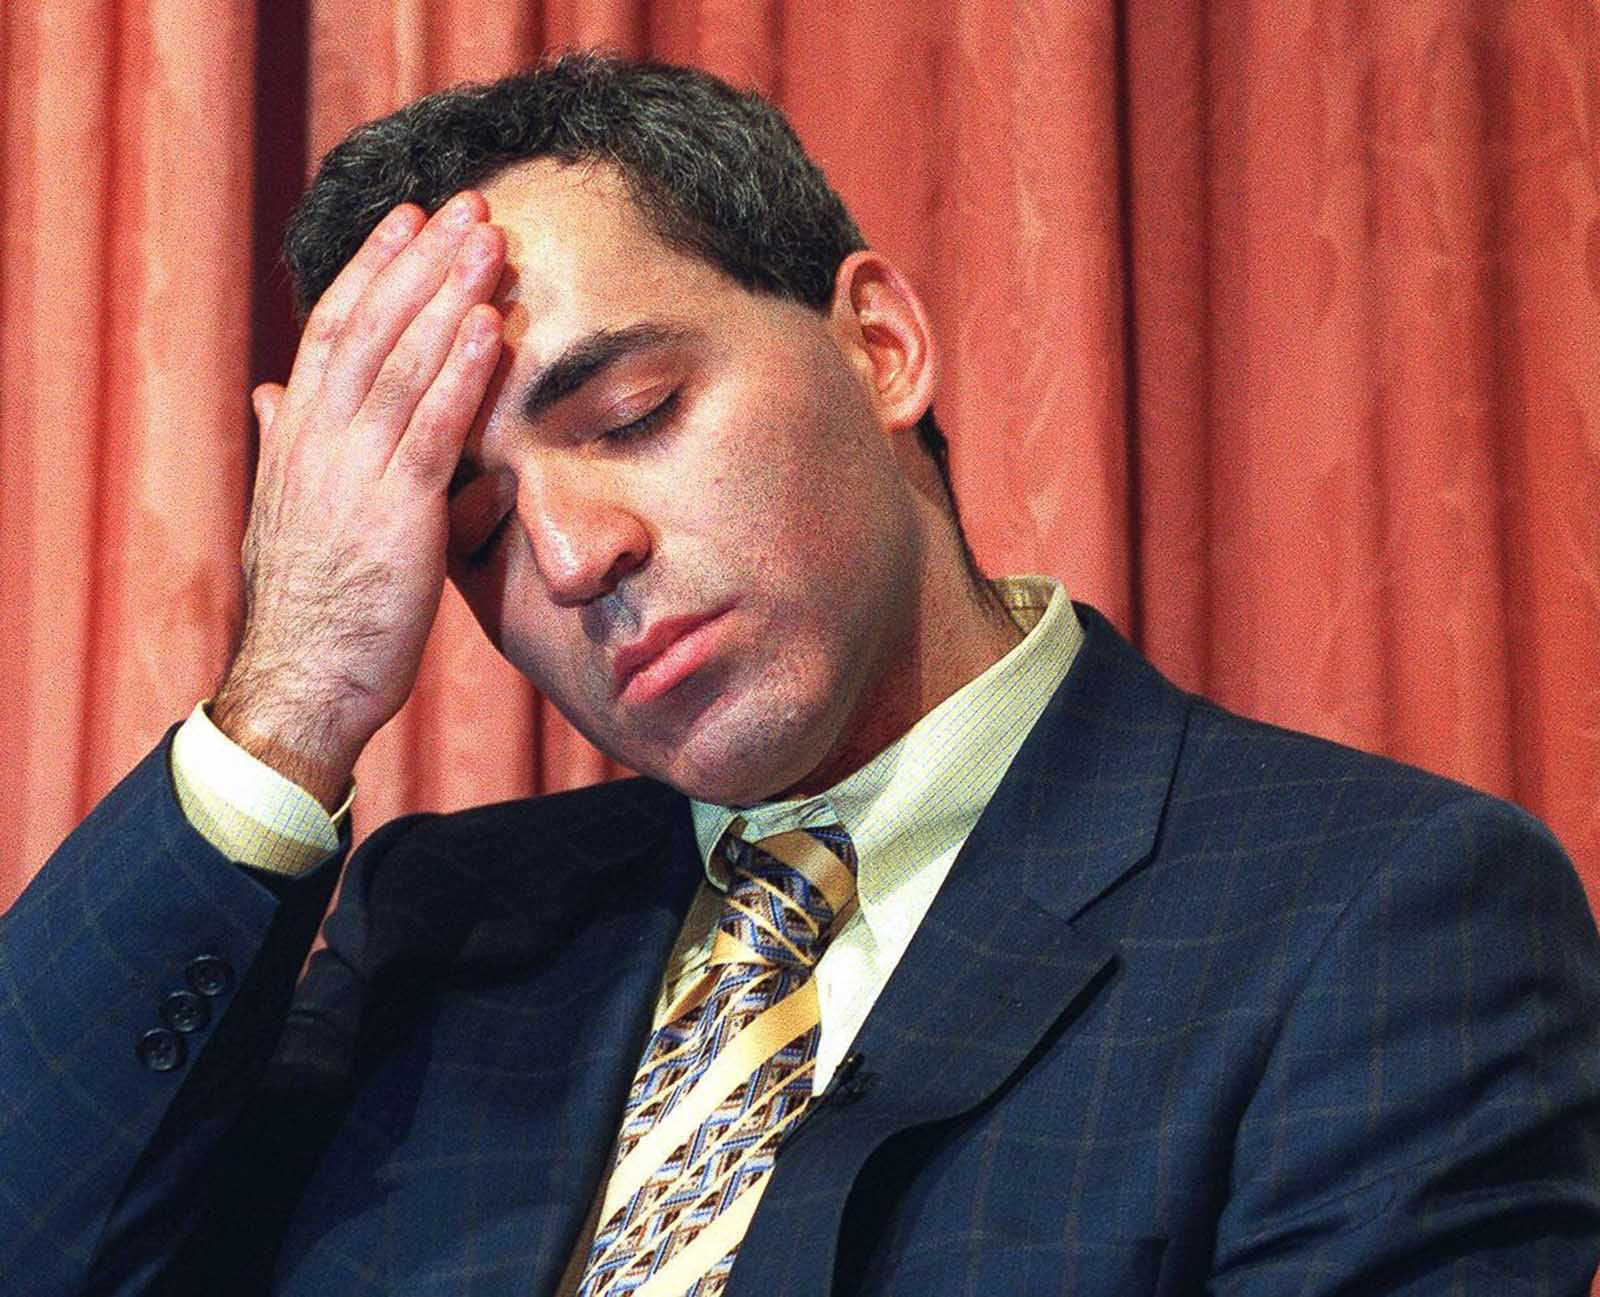 Kasparov wears a look of dejection after being swiftly defeated by Deep Blue in their final game. May 11, 1997.